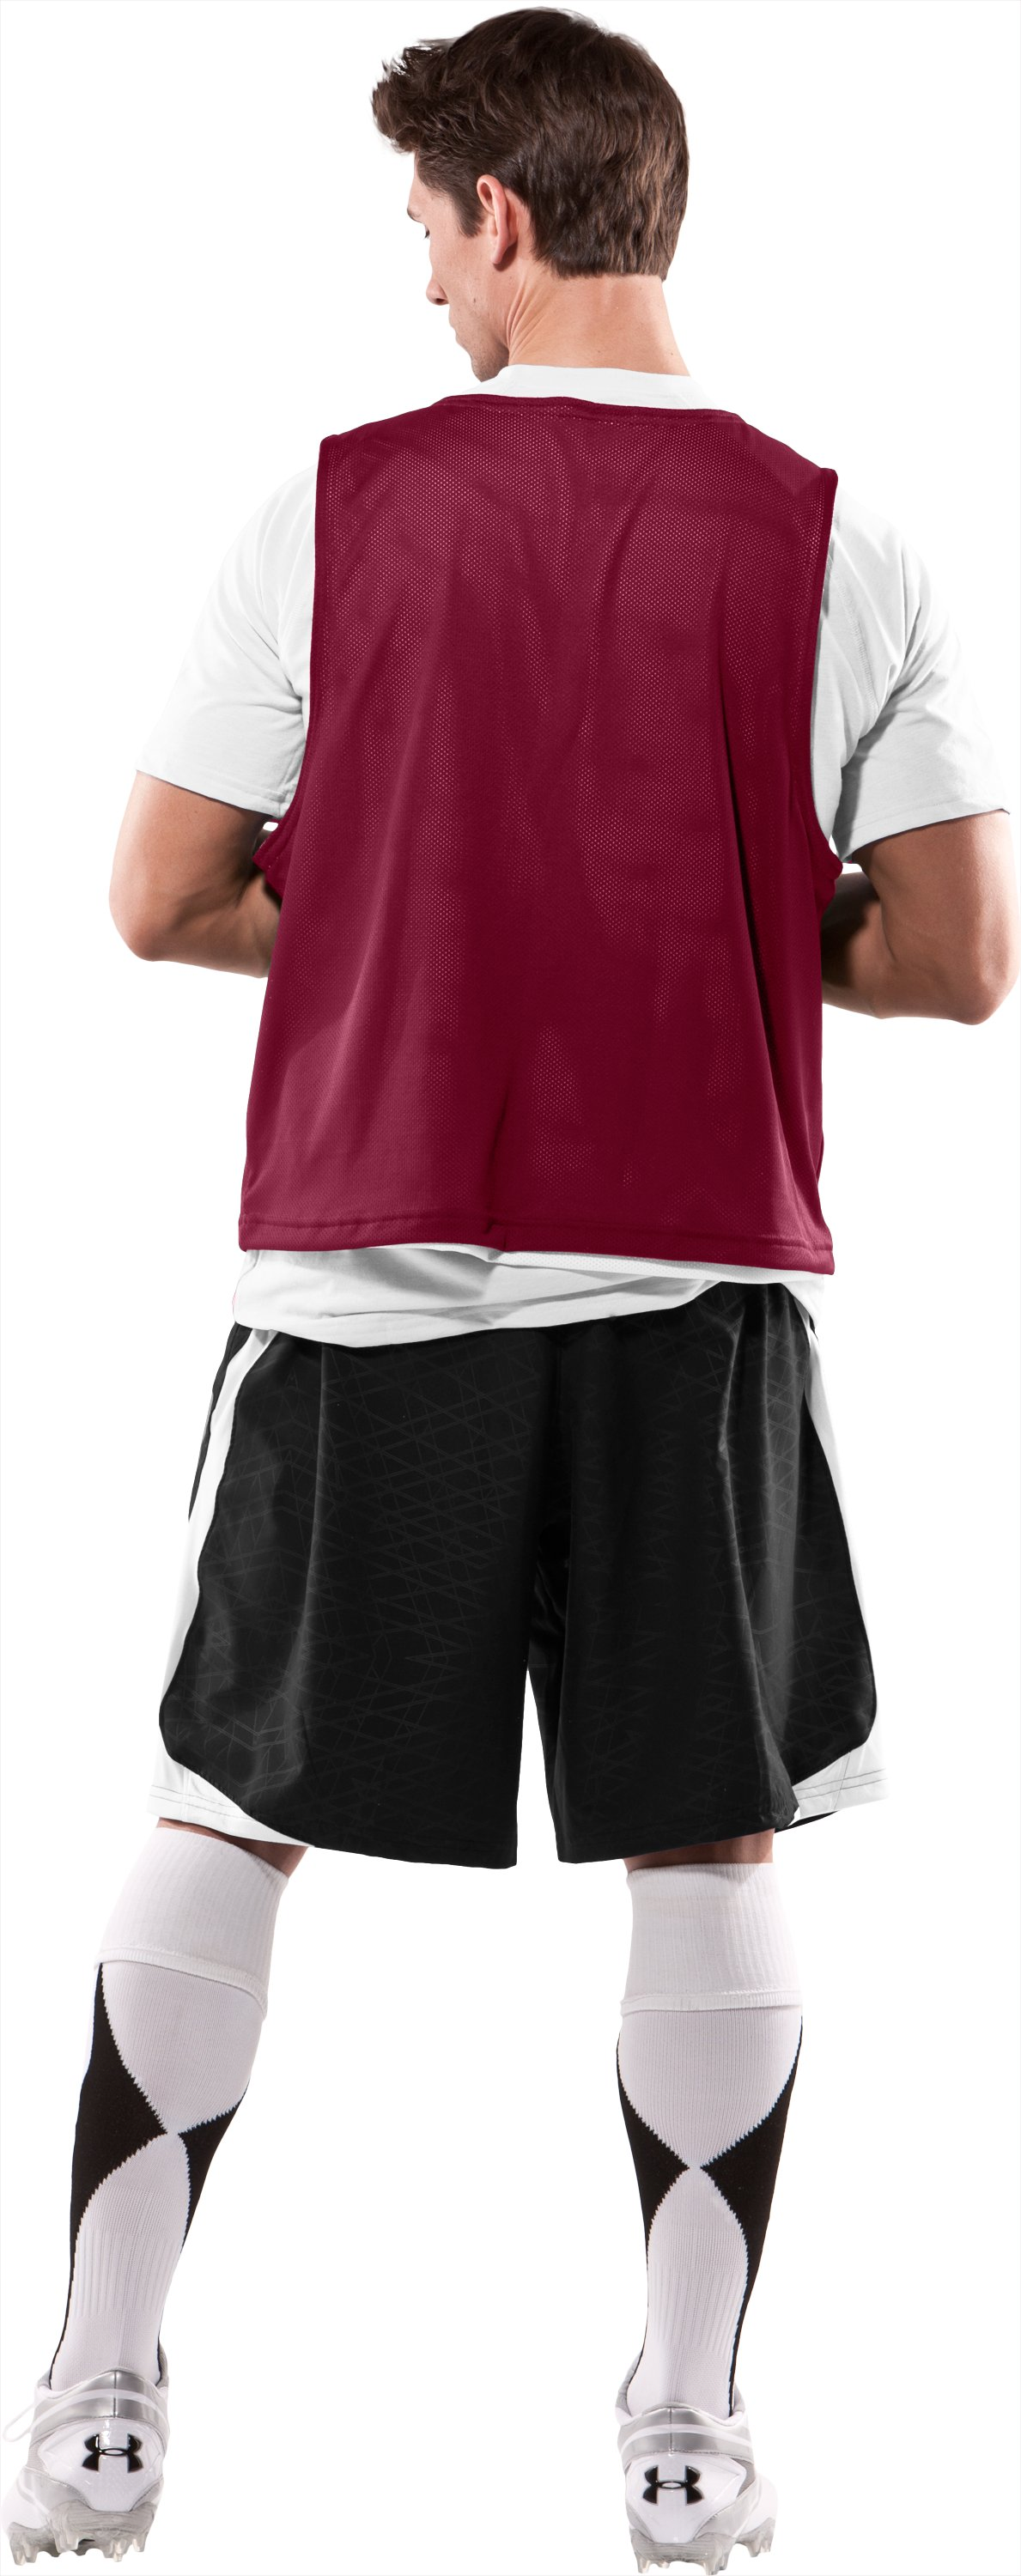 Men's Practice Jersey, Maroon, Back